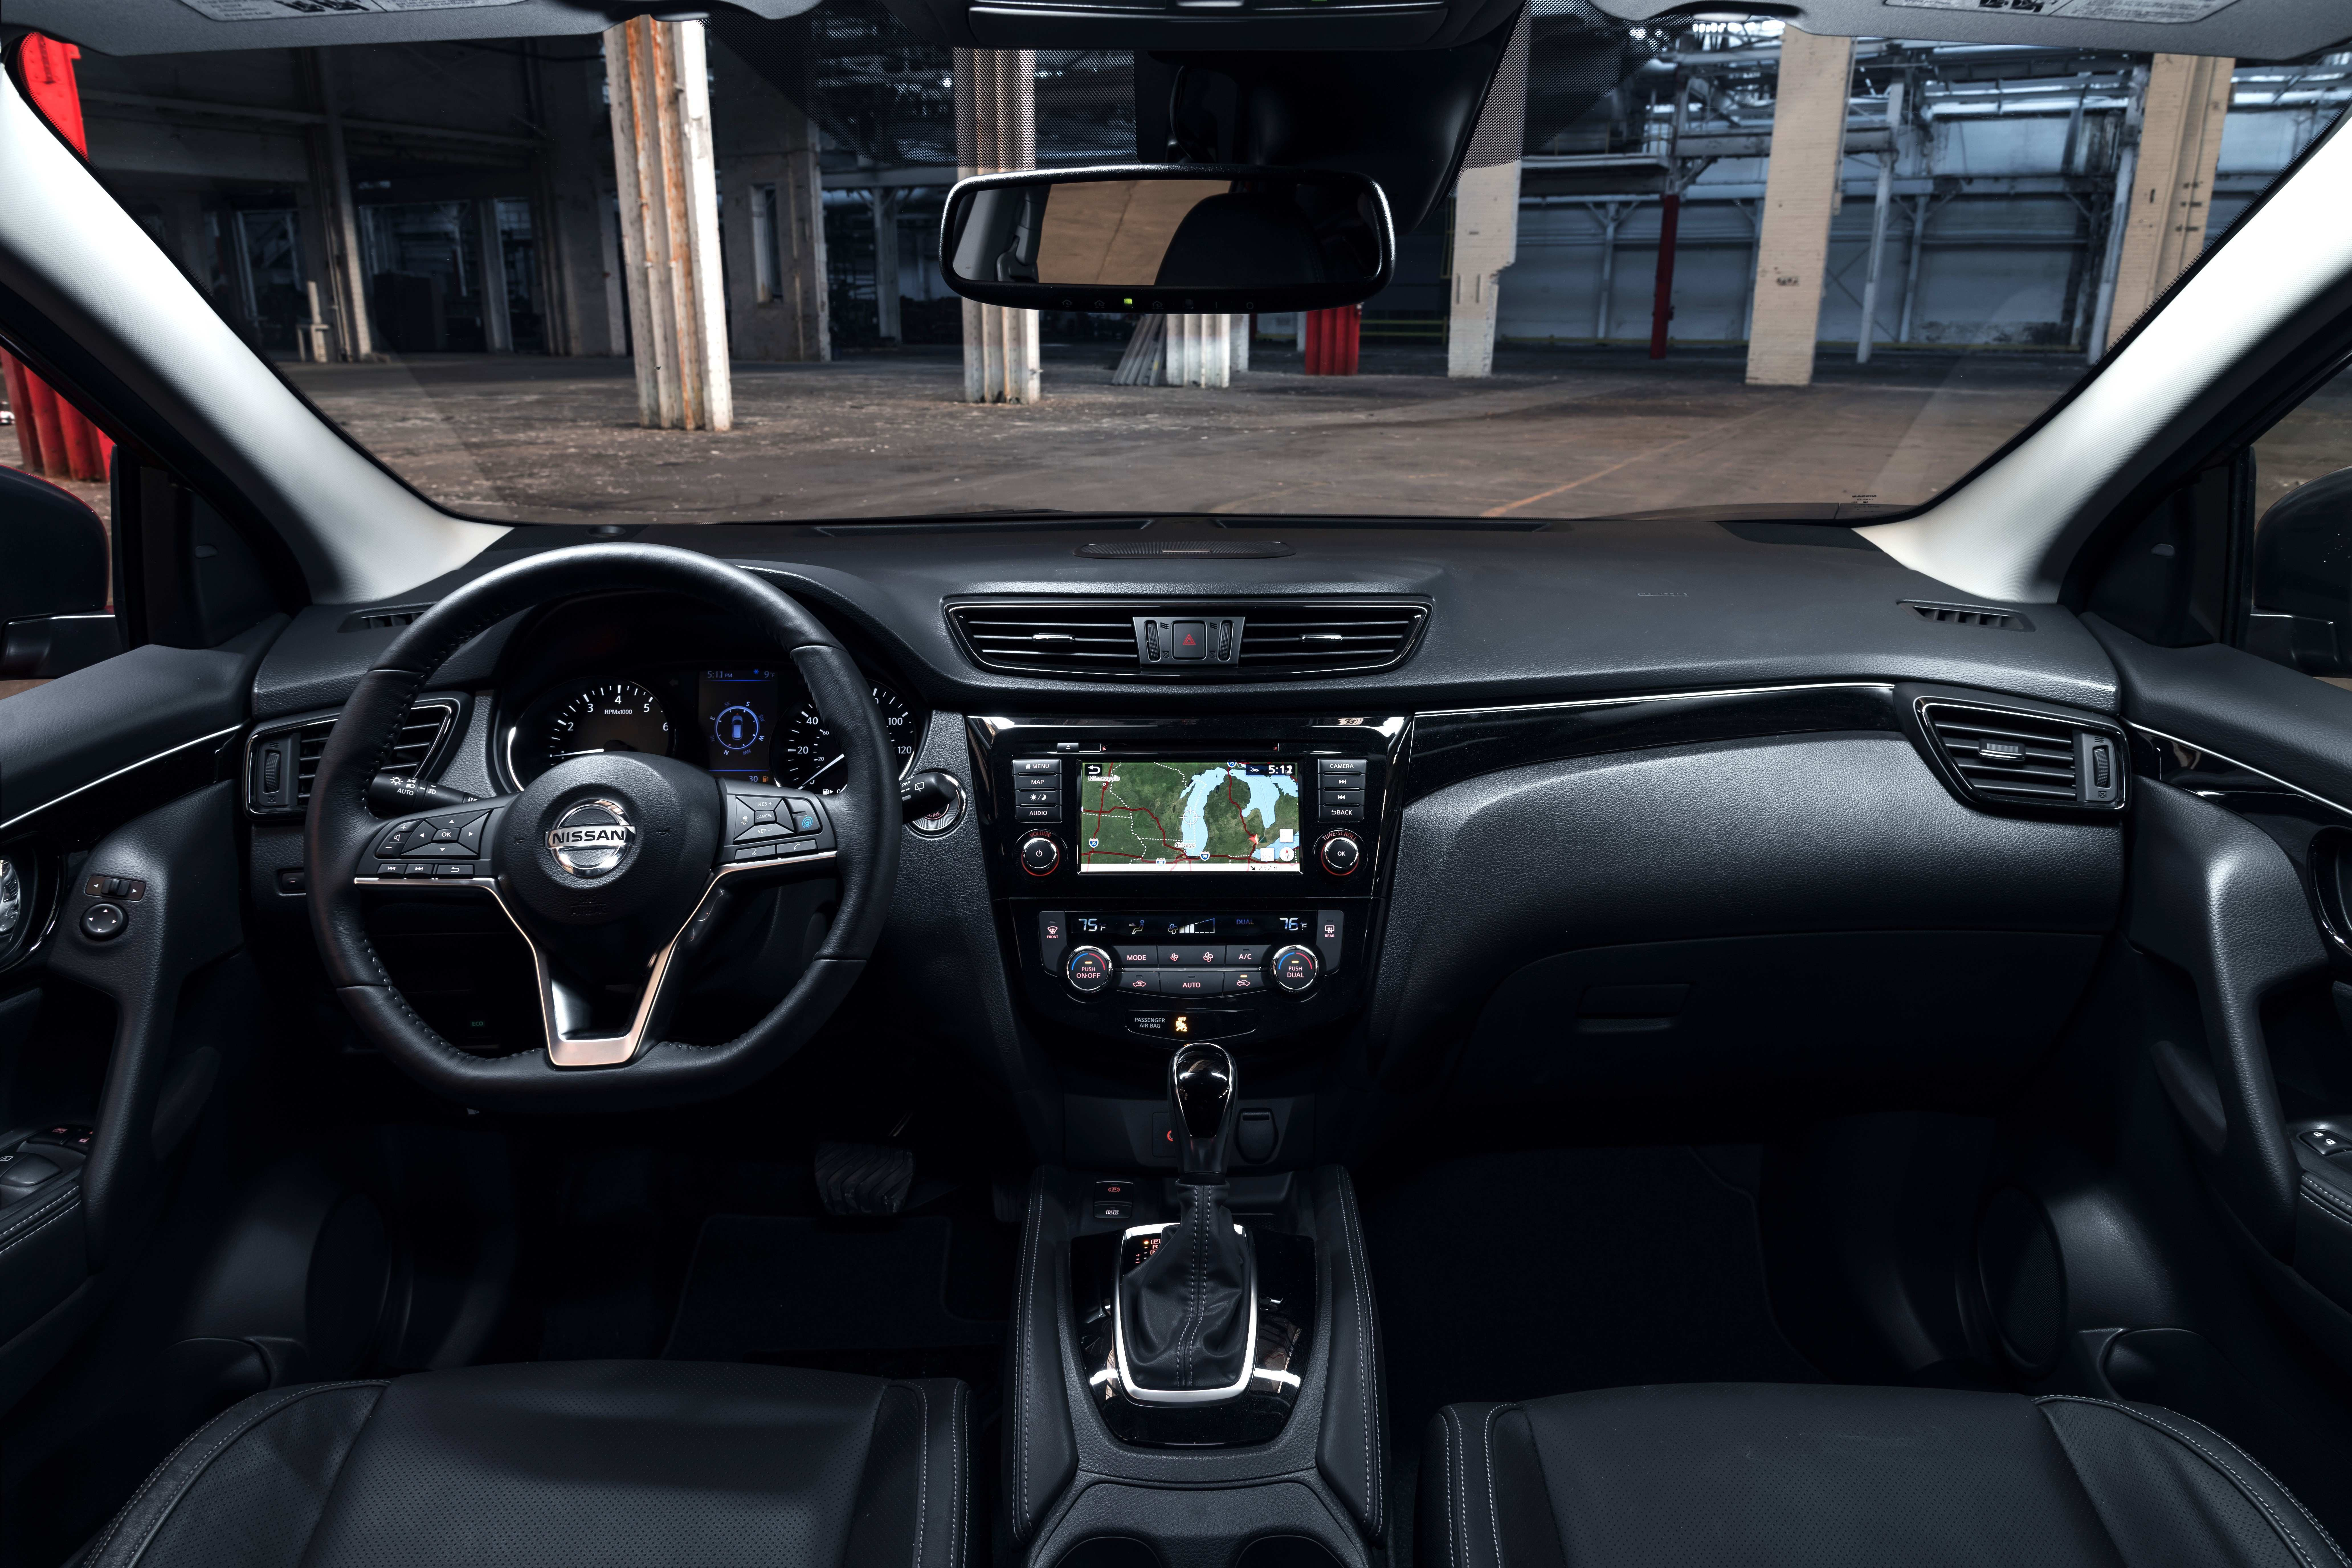 16 Best Review Nissan Qashqai 2020 Interior New Concept for Nissan Qashqai 2020 Interior